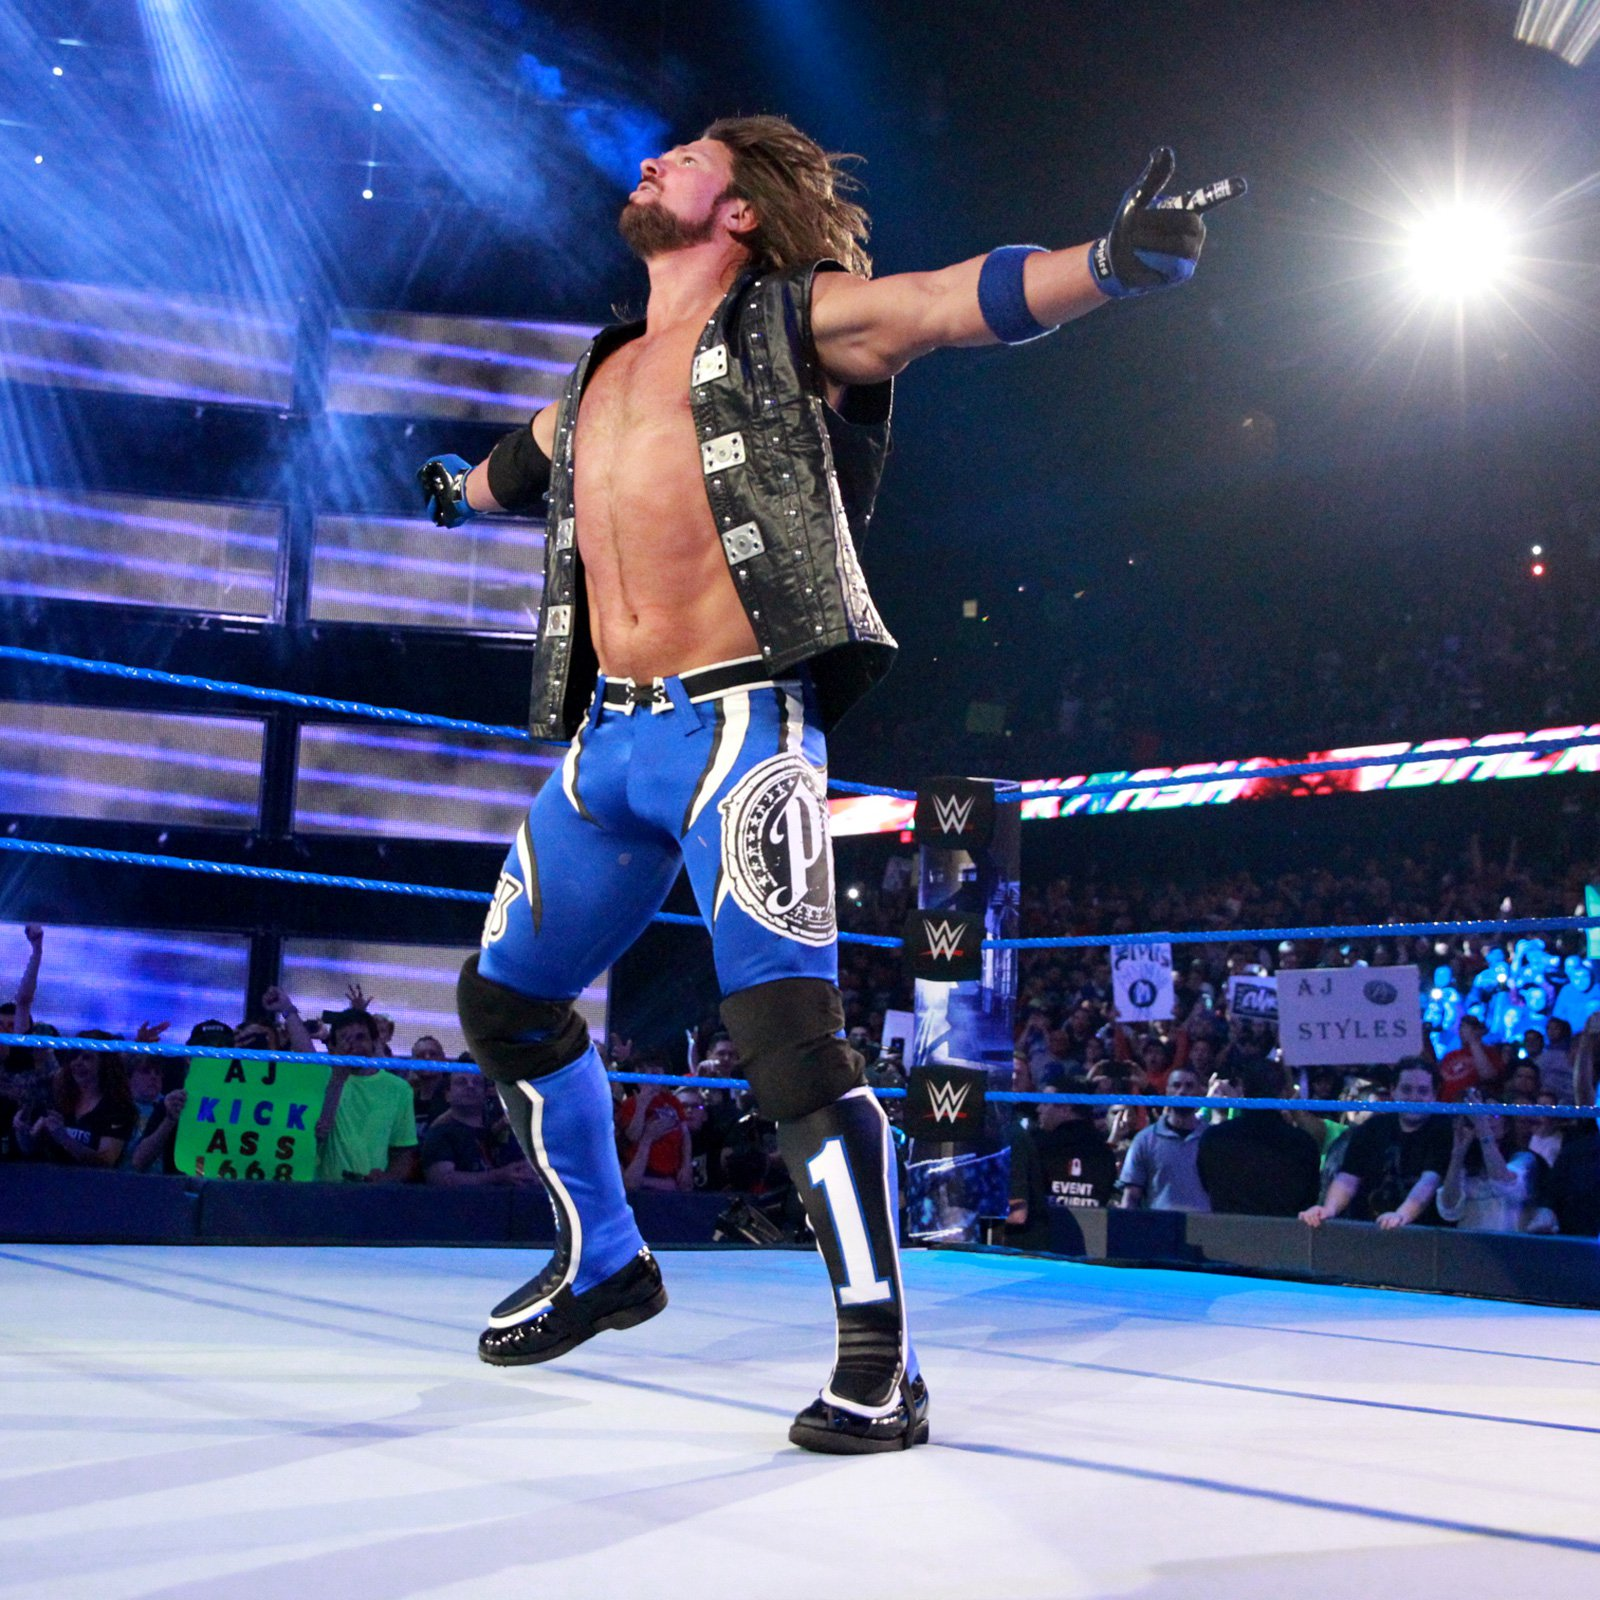 AJ Styles has his sights set on claiming the United States Championship.